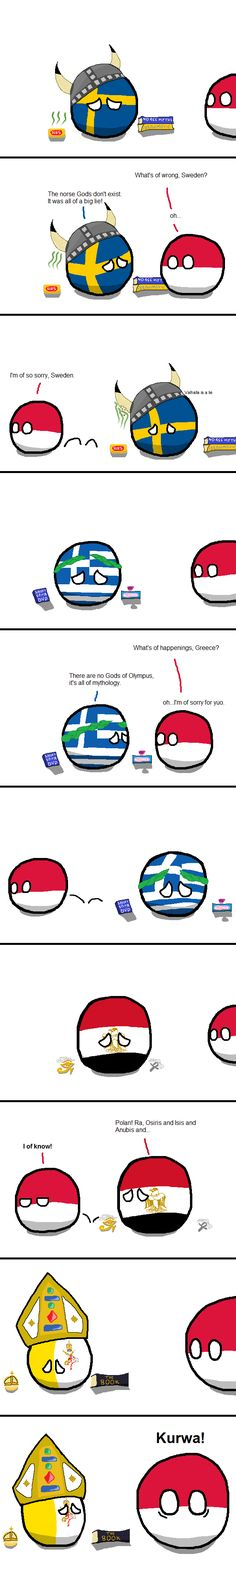 """Ancient Religions"" by FlyingBlueWolf #polandball #countryball #flagball"